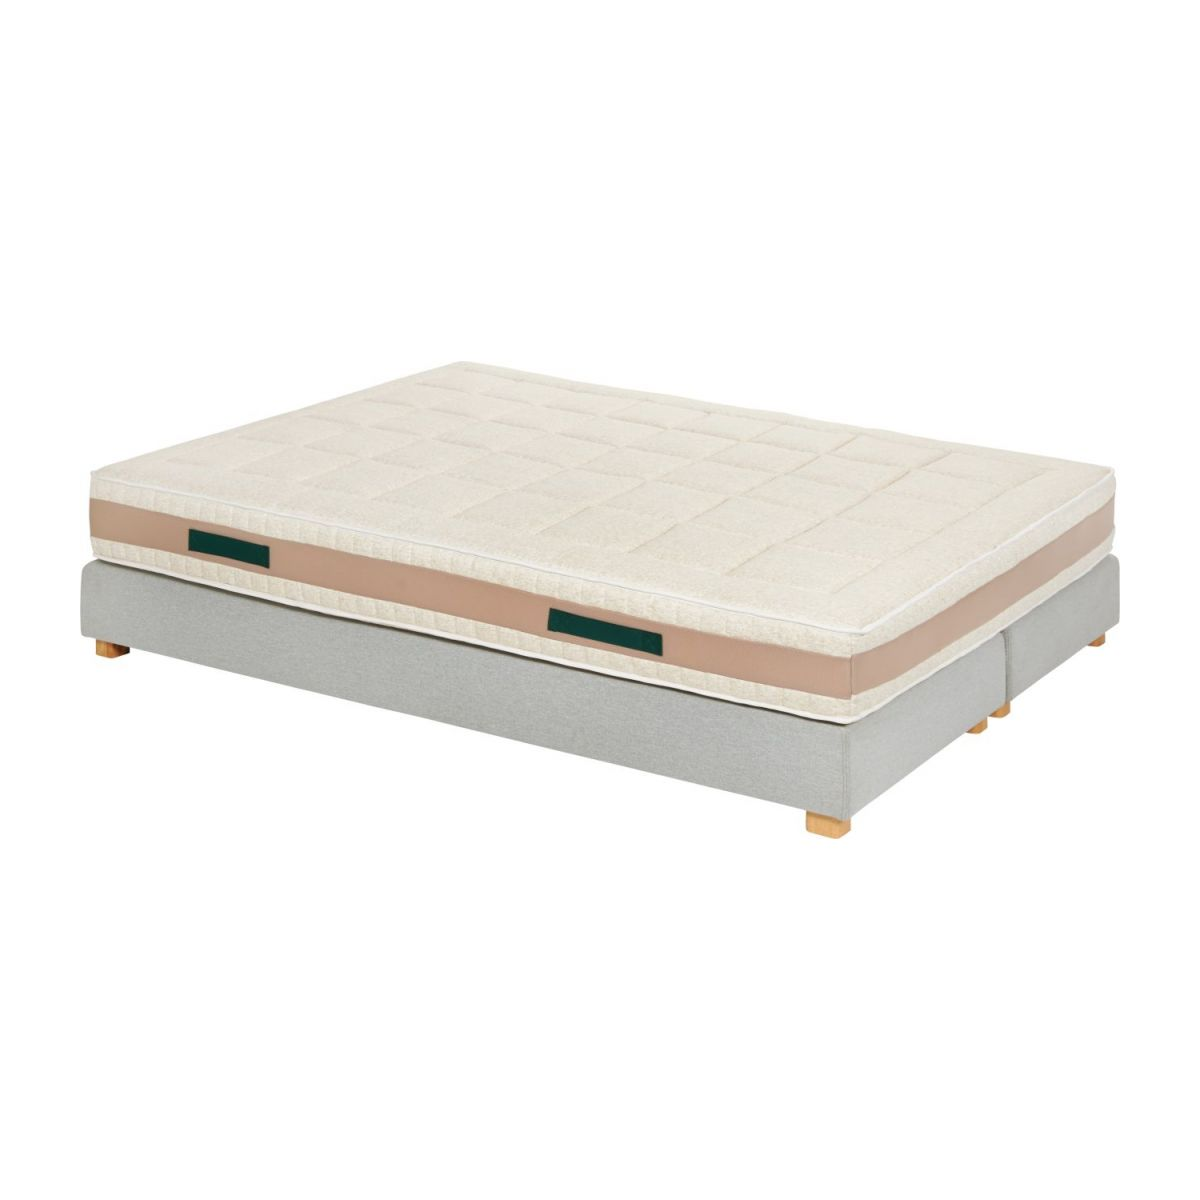 Latex mattress , width 23 cm, 160x200cm - firm support n°5